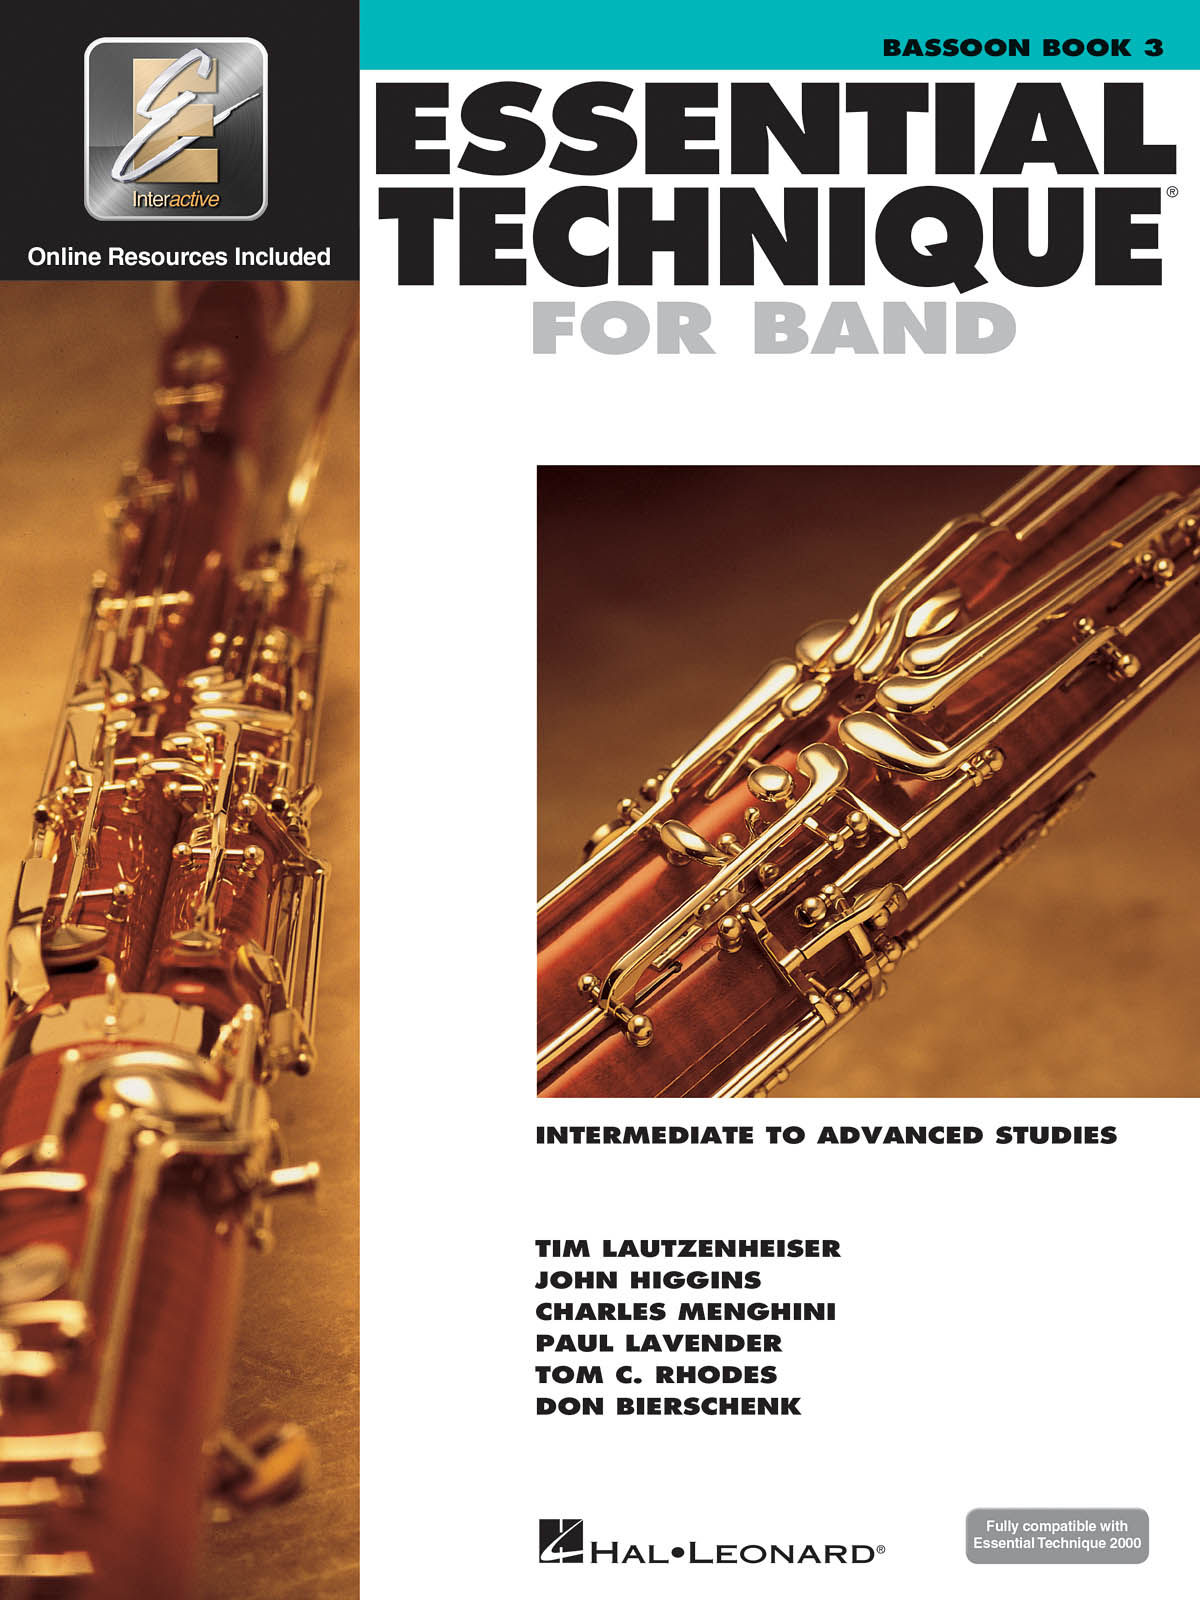 Essential Elements for Band - Book 3 - Bassoon: Bassoon Solo: Book & Audio